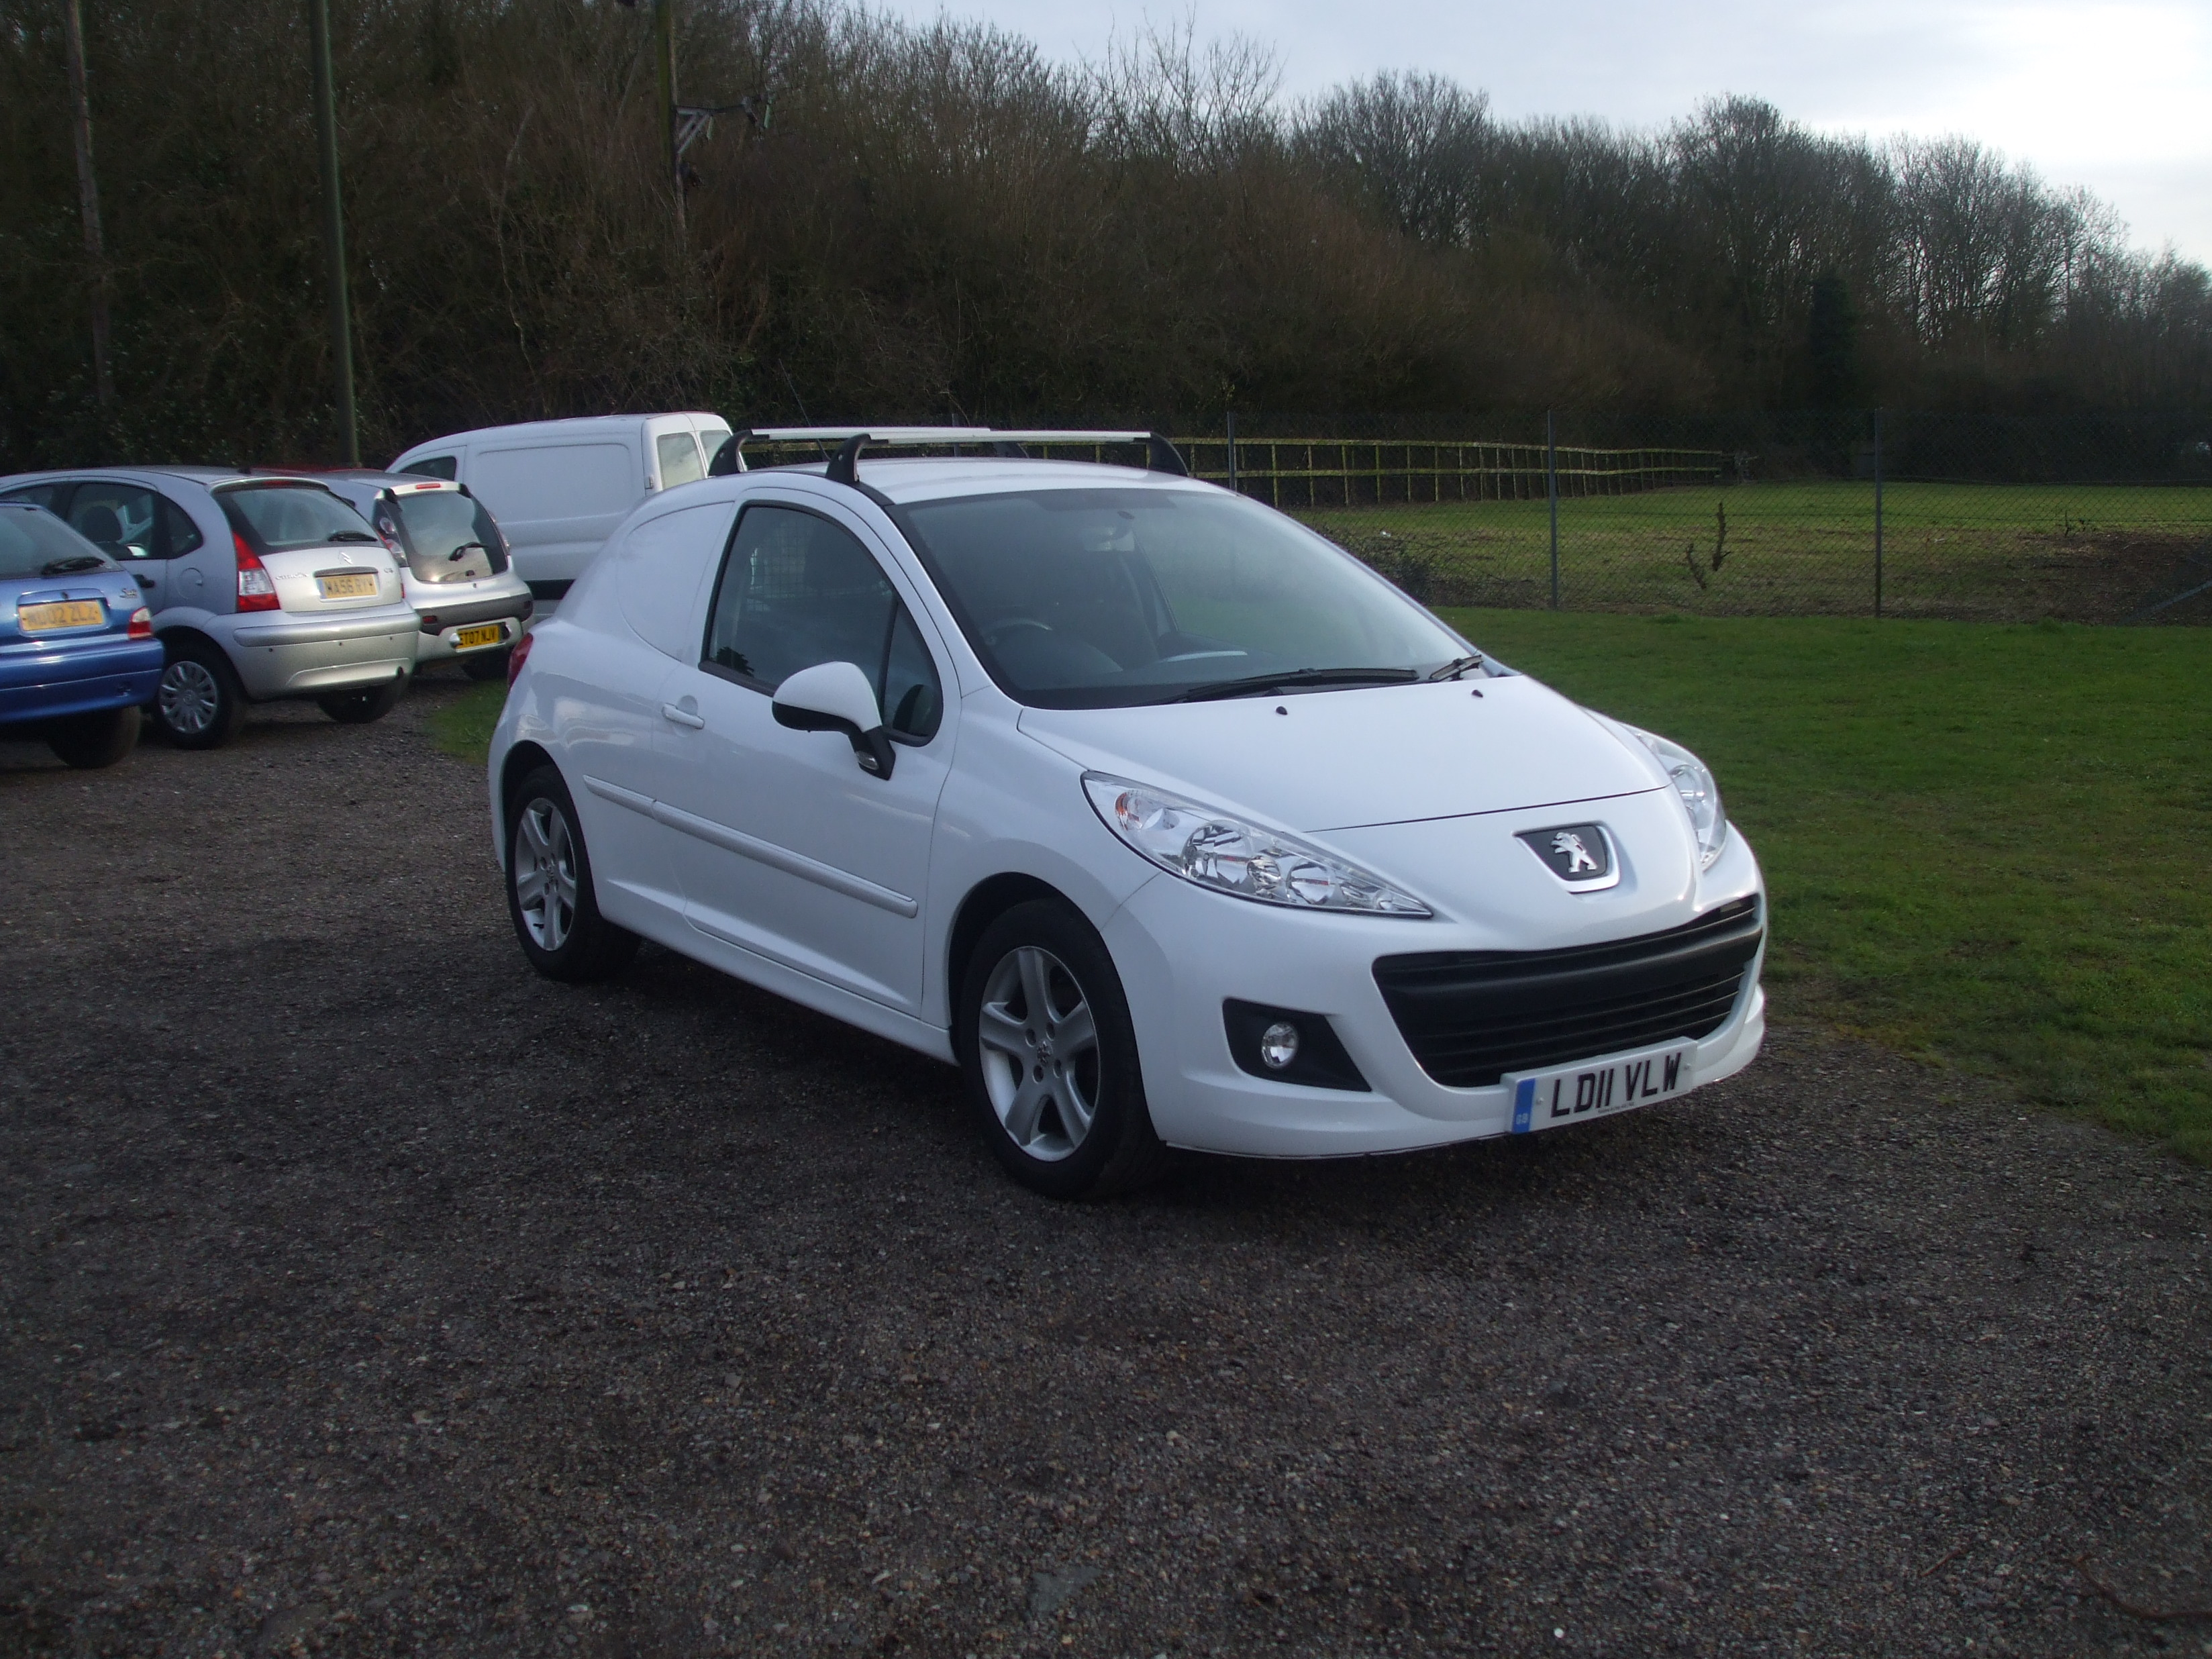 peugeot 207 1 4 hdi panel van 11 reg sold ymark vehicle services. Black Bedroom Furniture Sets. Home Design Ideas